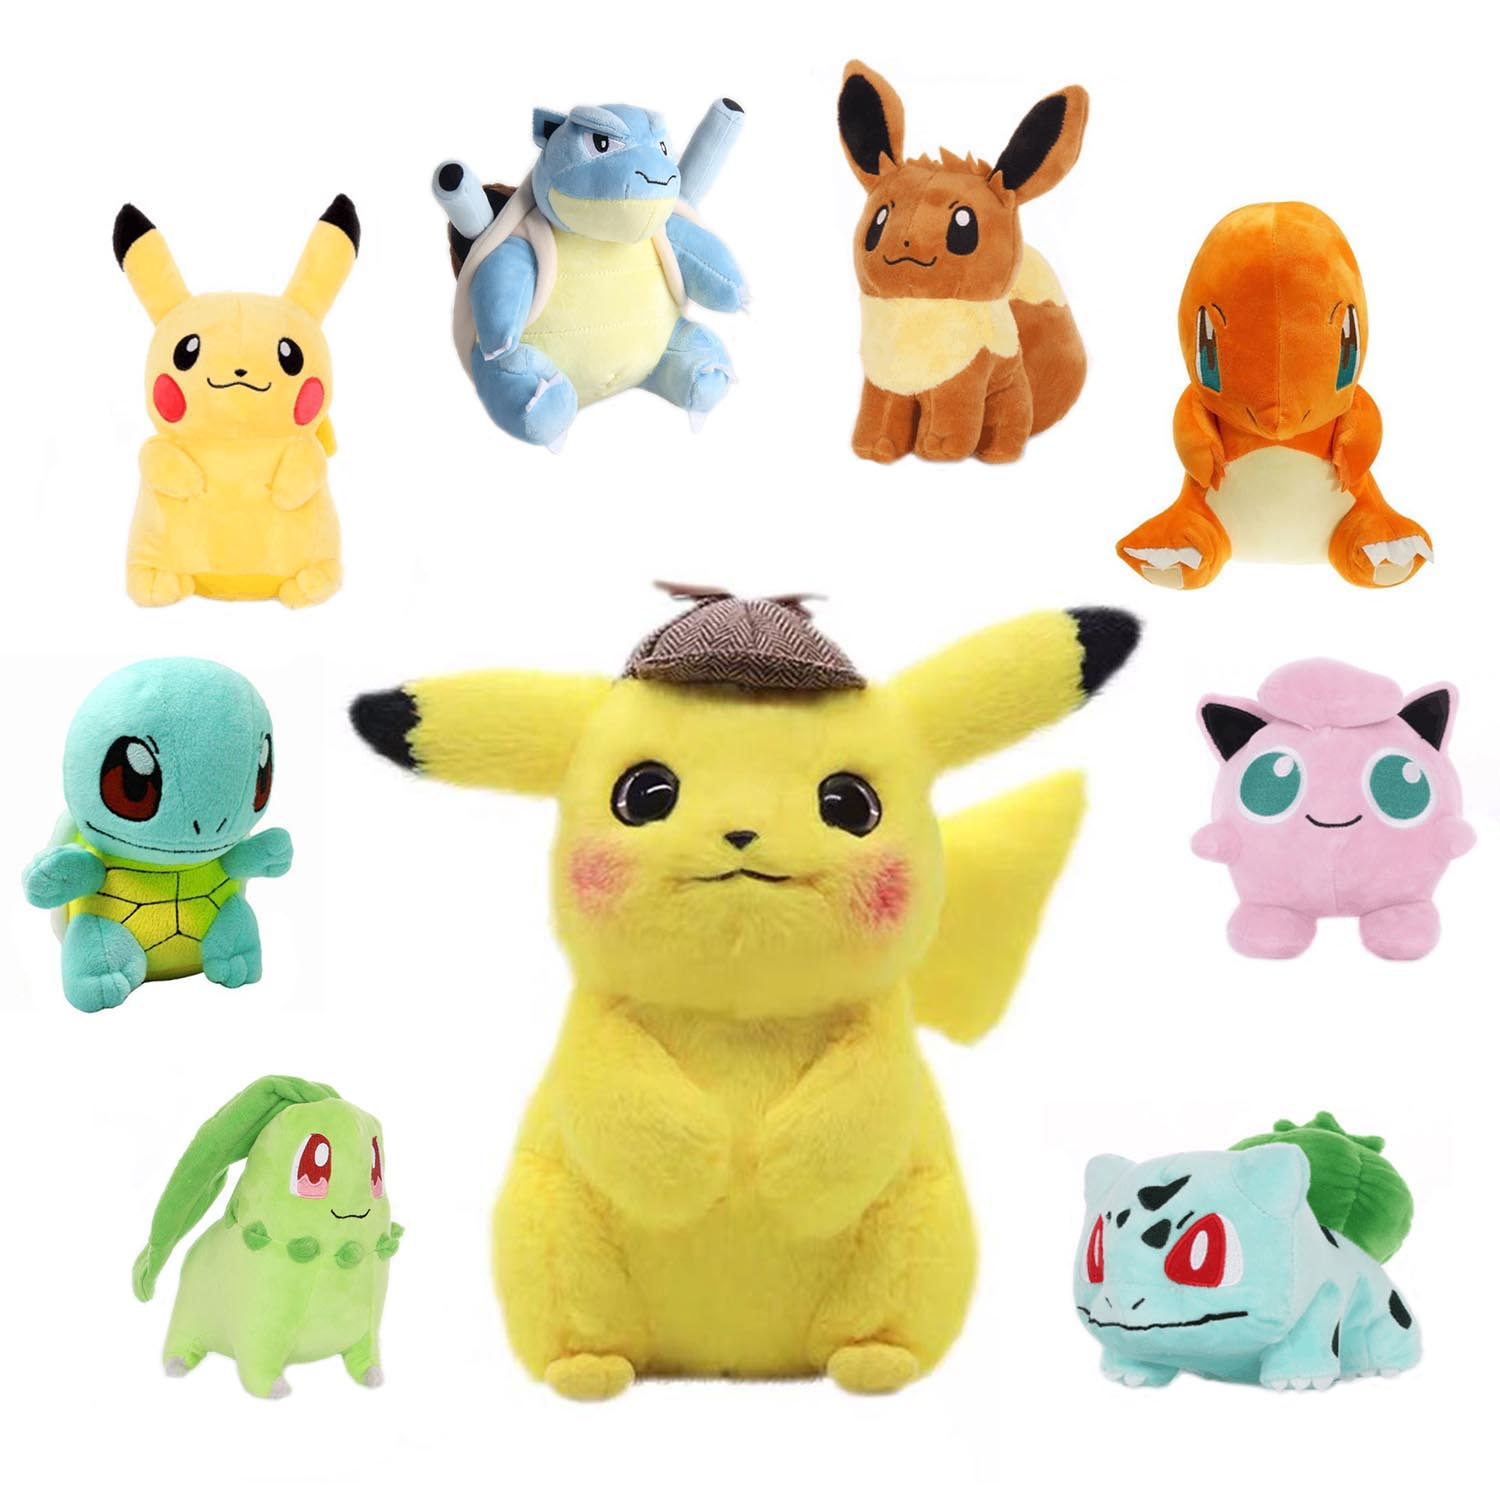 Detective Pikachu Psyduck Bulbasaur Mewtwo Charizard Plush Toys For Children Gift Cute Claw Machine Doll Soft Stuffed Movie